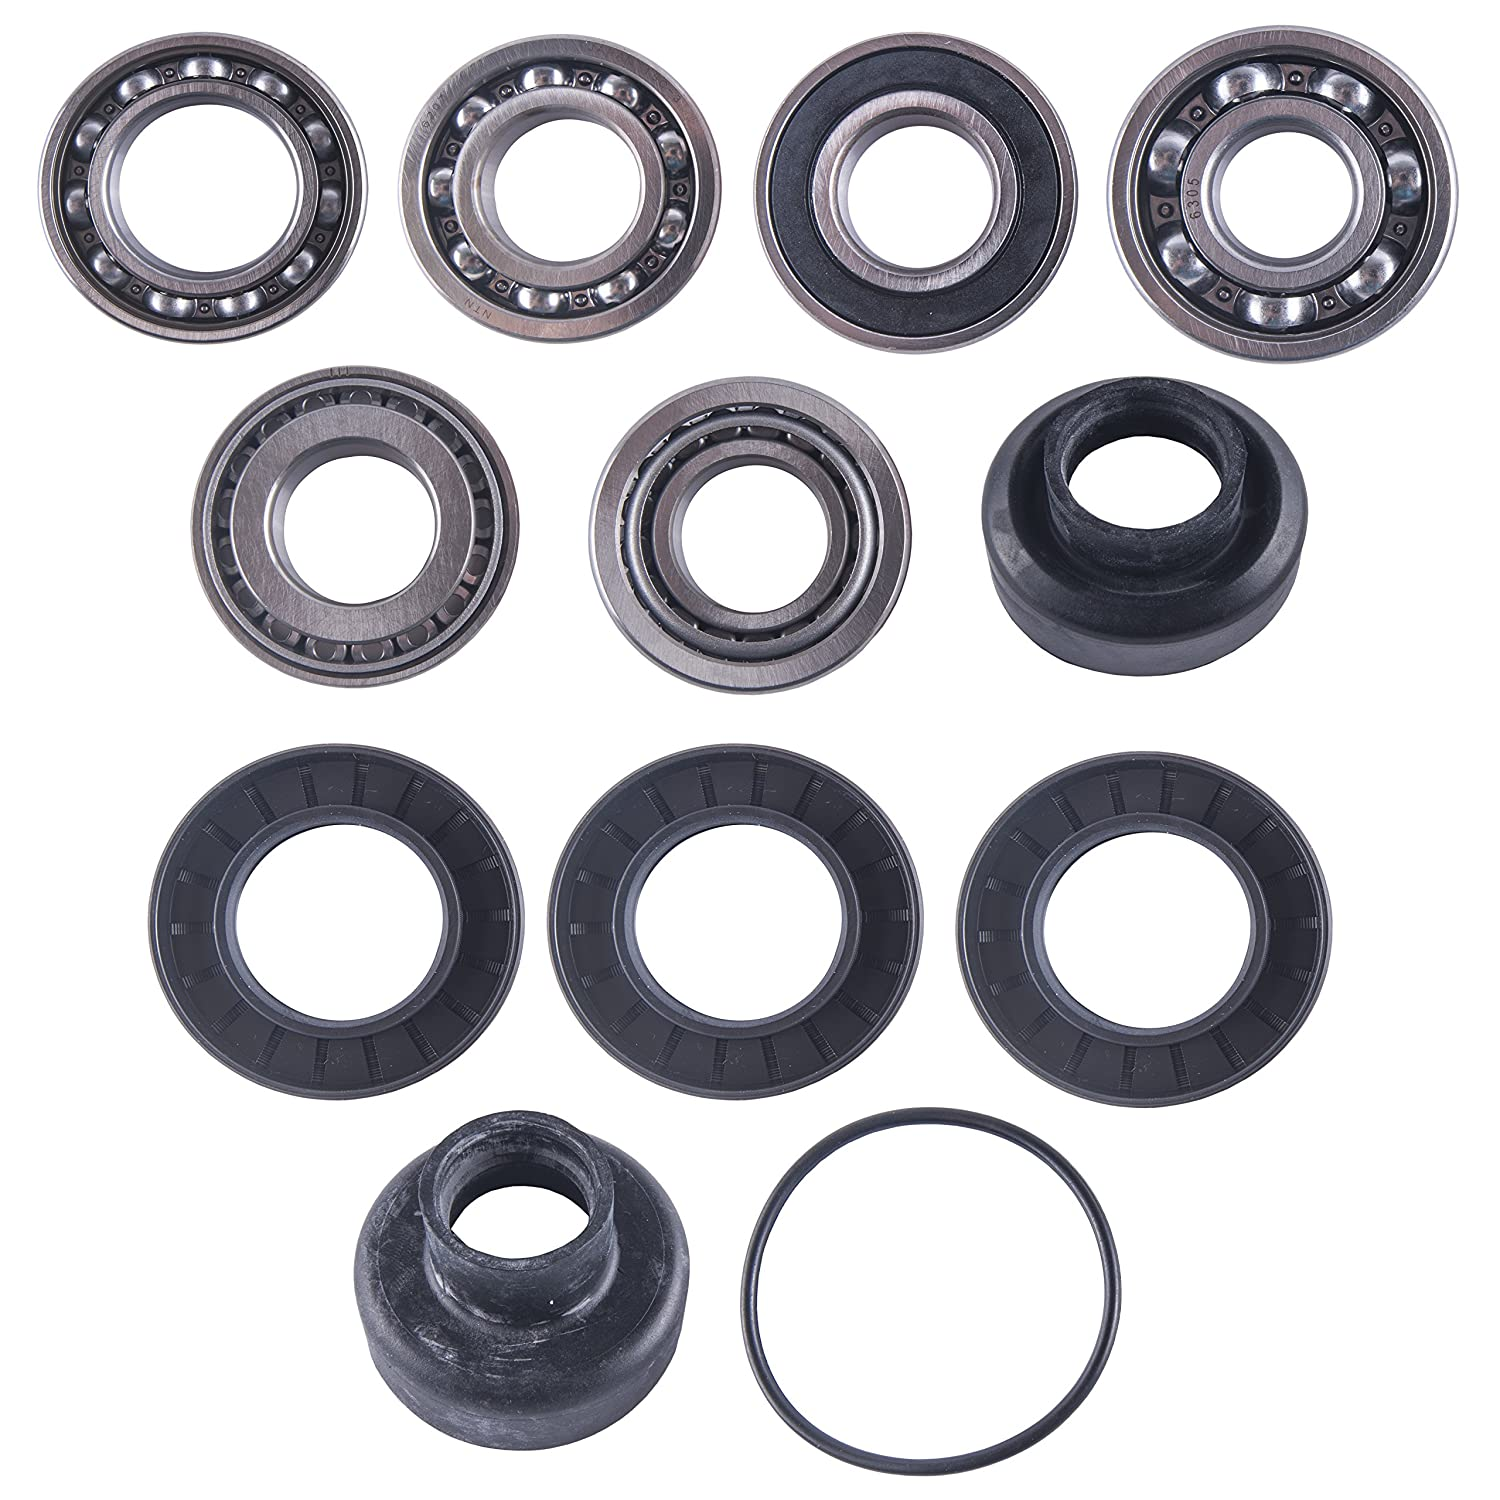 Yamaha rear differential beaing & seal kit 550/700 Grizzly 2007 2008 09-2015 East Lake Axle